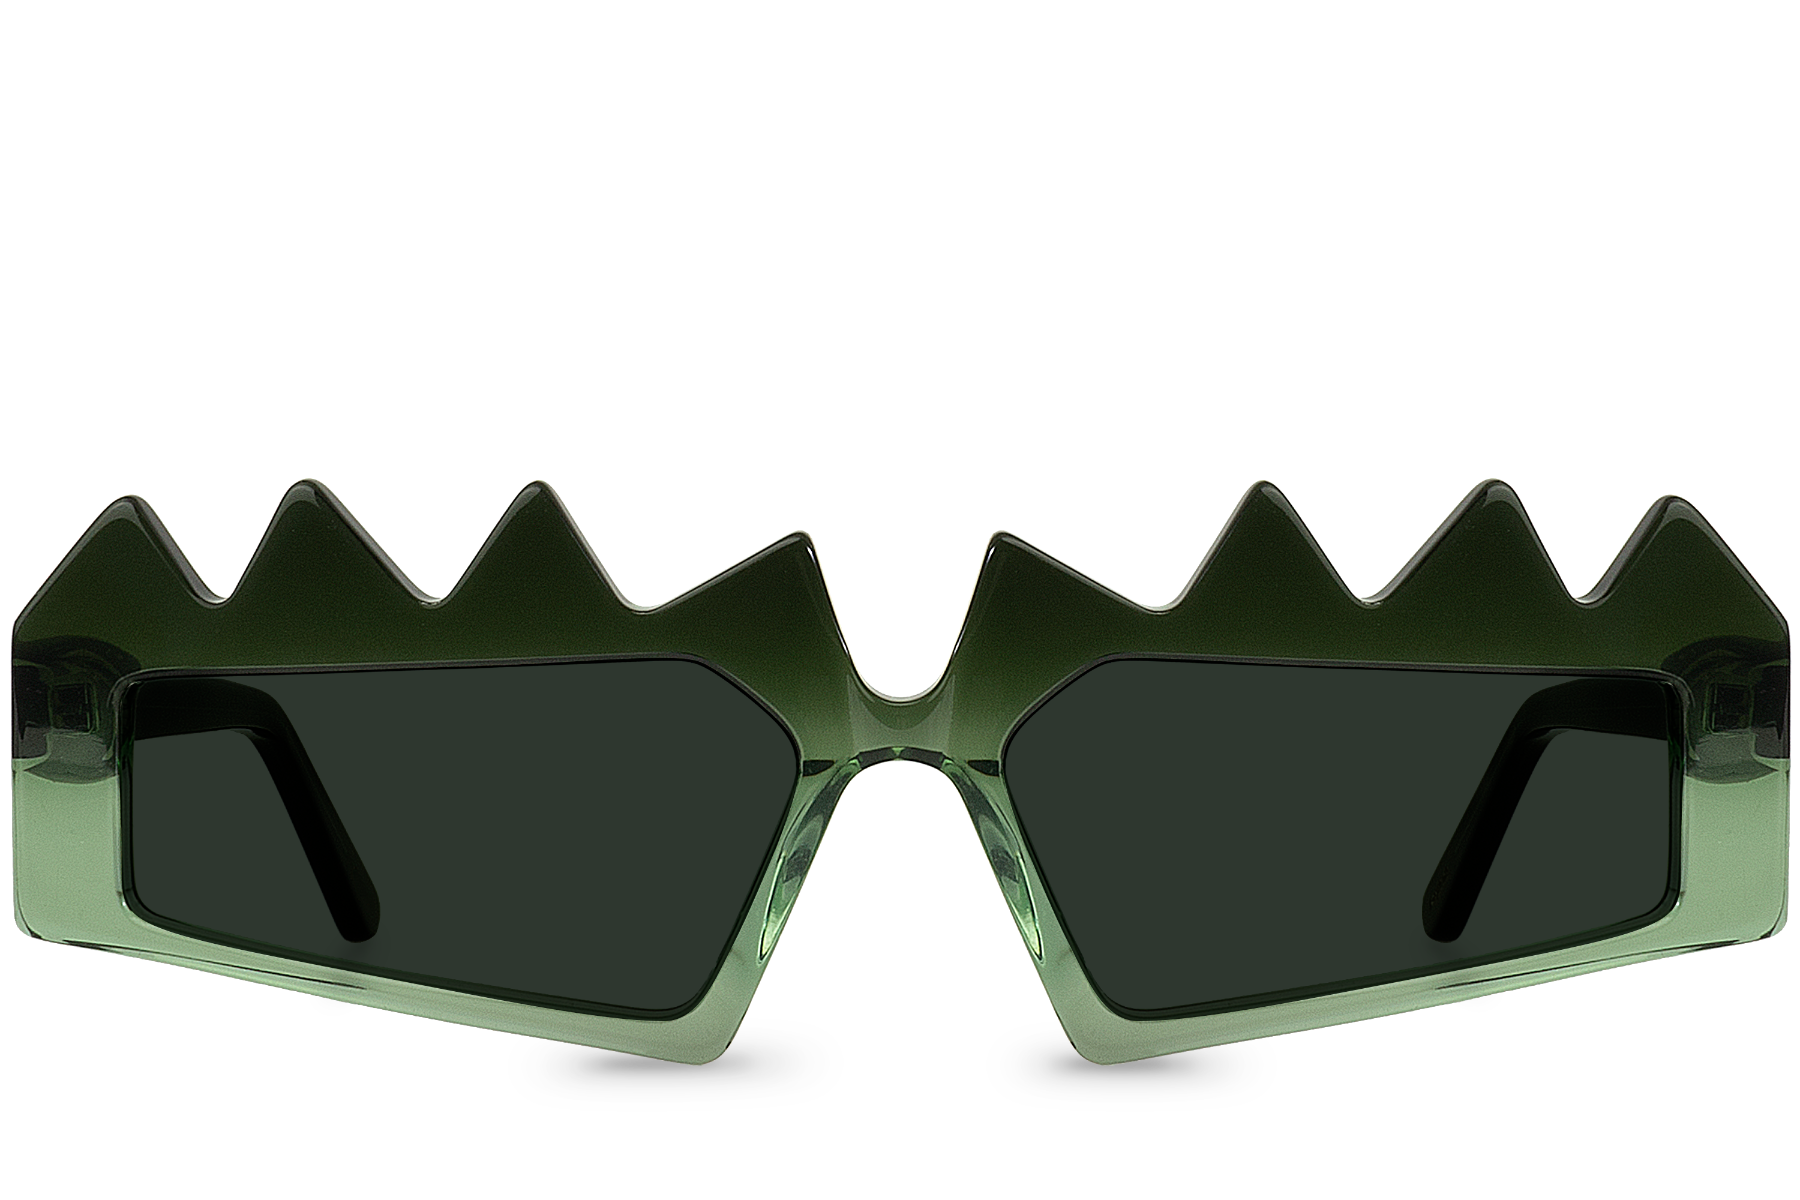 reptilia green front view